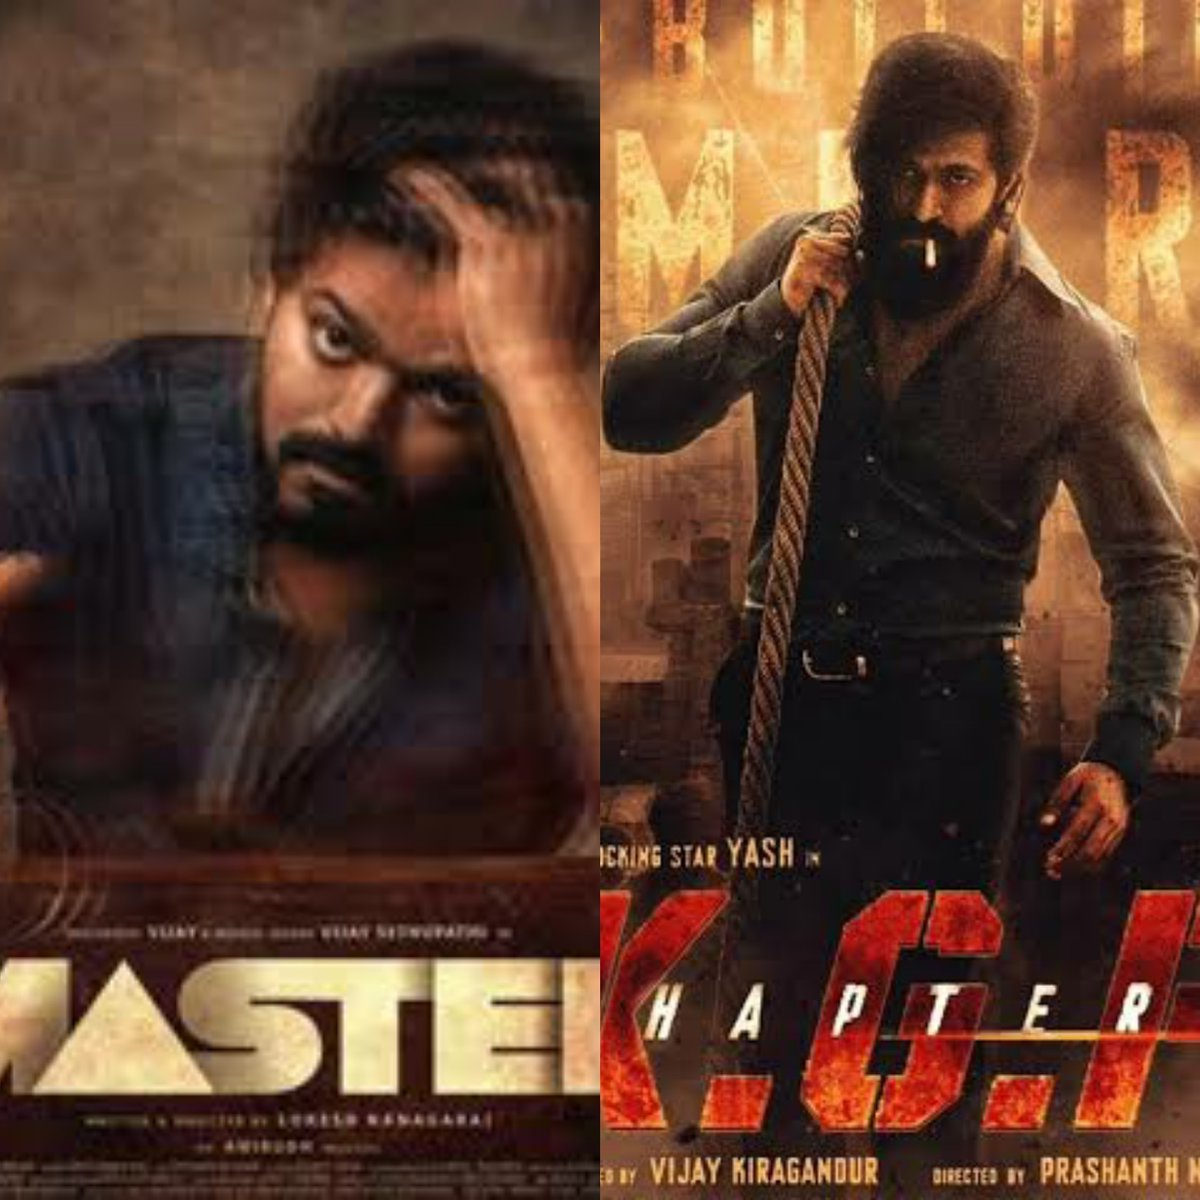 #KGFChapter2 or #Master? What's your pick?  #Cinepolis #CinepolisIndia https://t.co/8791K1vpco